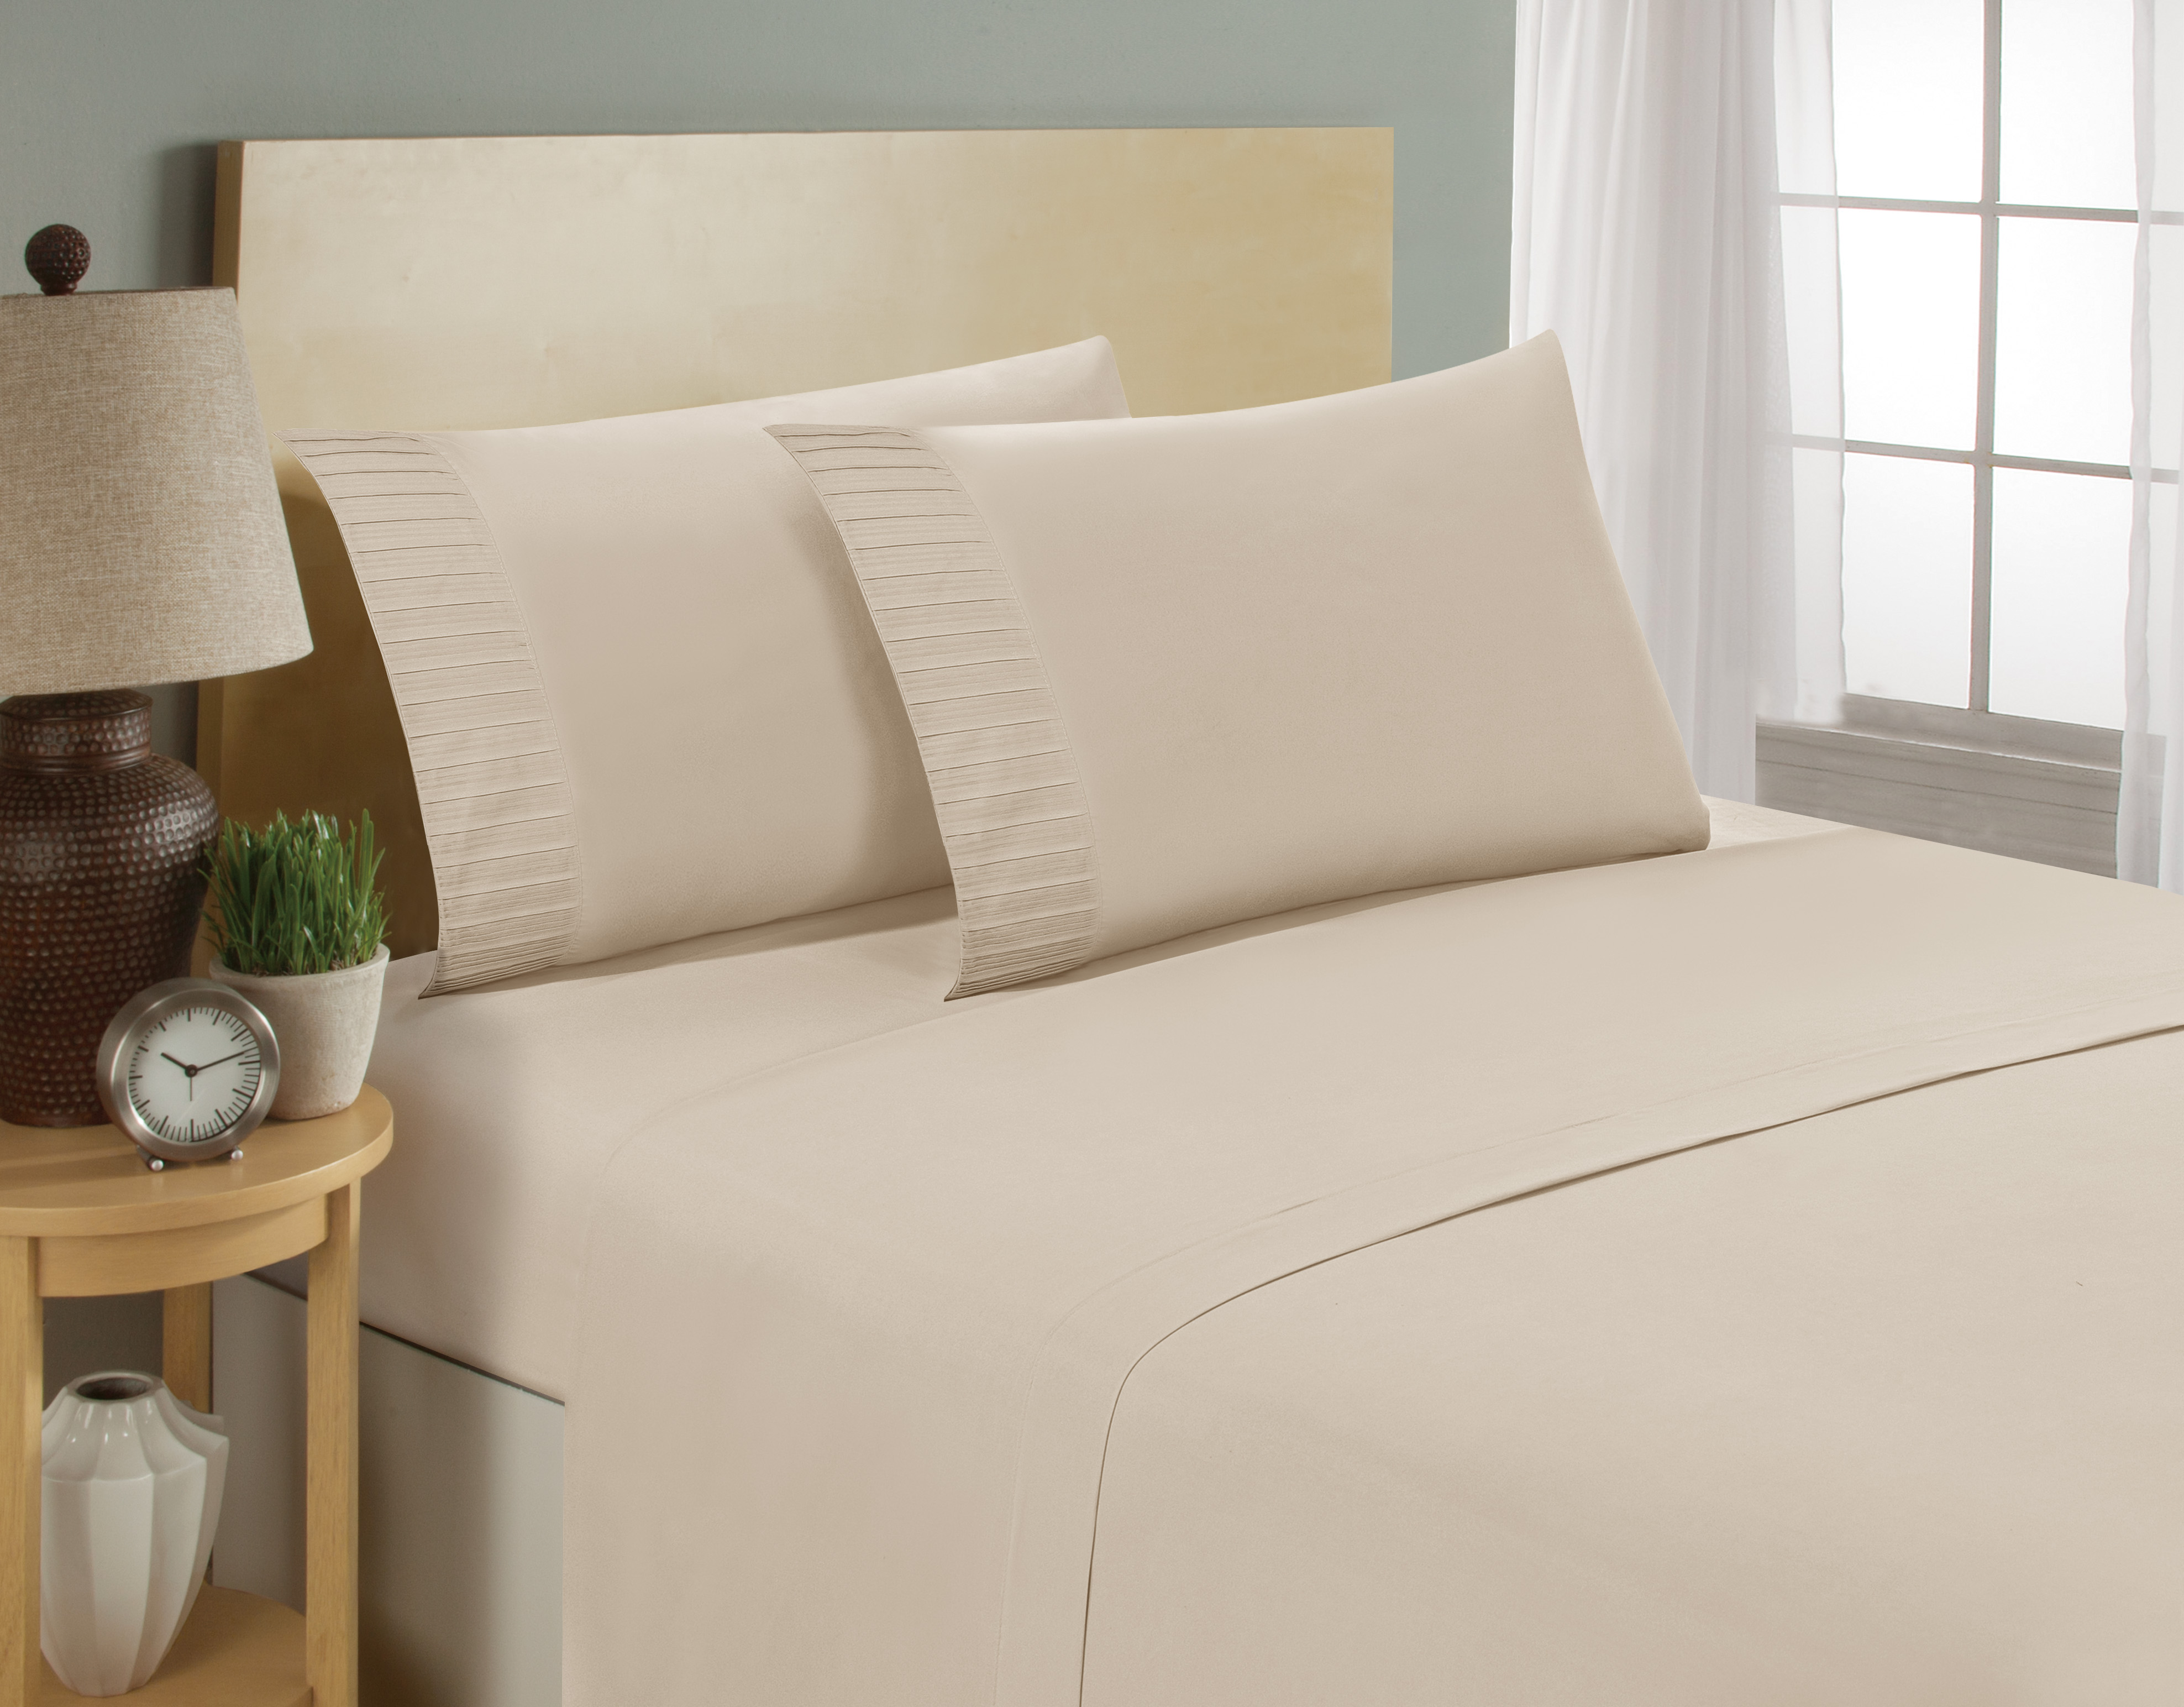 aJOY World Pleated 1800 Series Ultra-soft Premium Microfiber Sheet Set - Twin, Cream